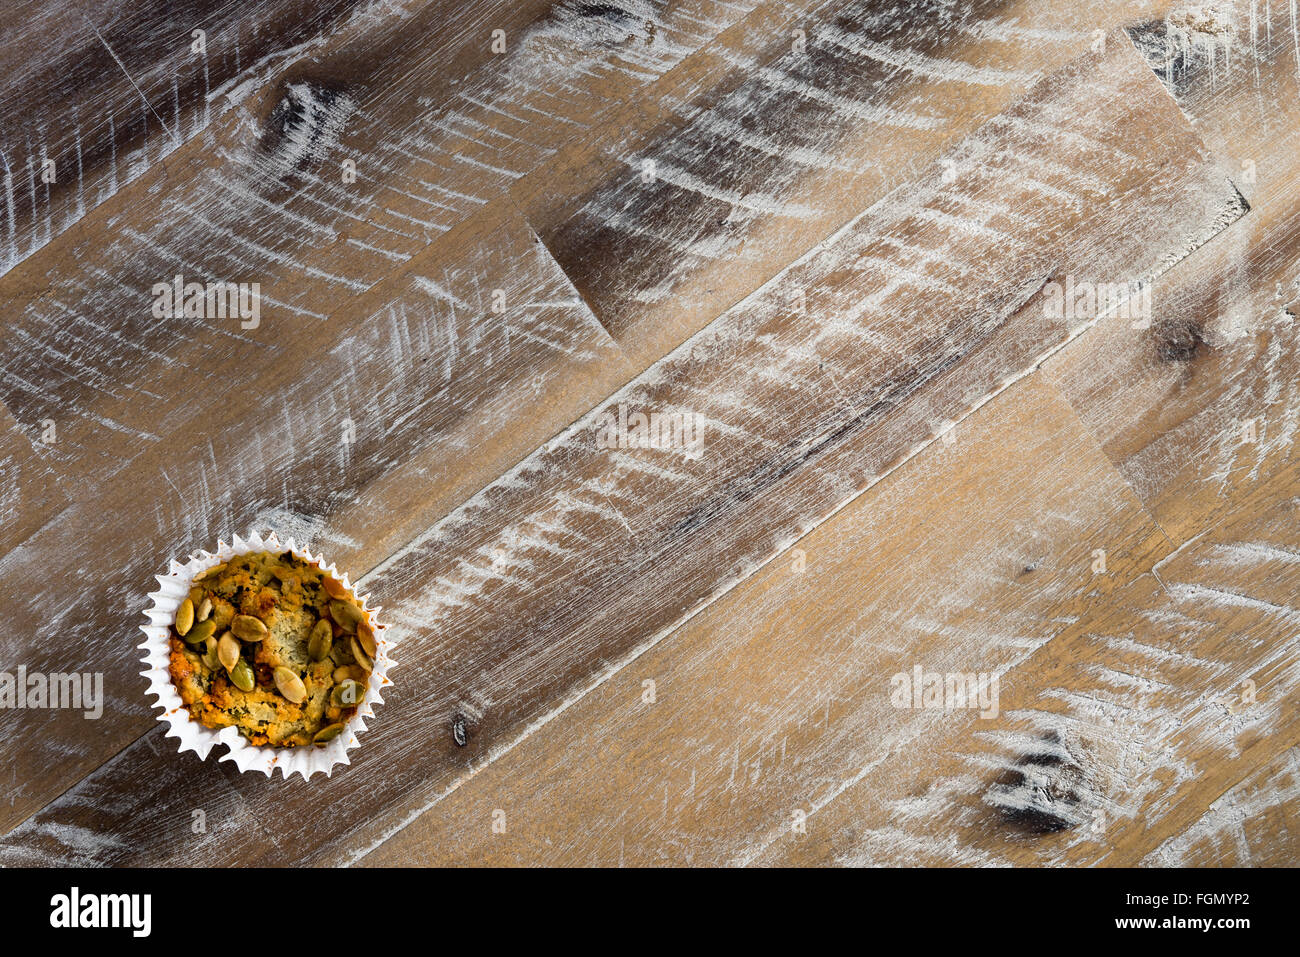 Handmade Savoury Blue Cheese Cupcake on vintage wooden background, aerial top view, toned filter applied, available - Stock Image